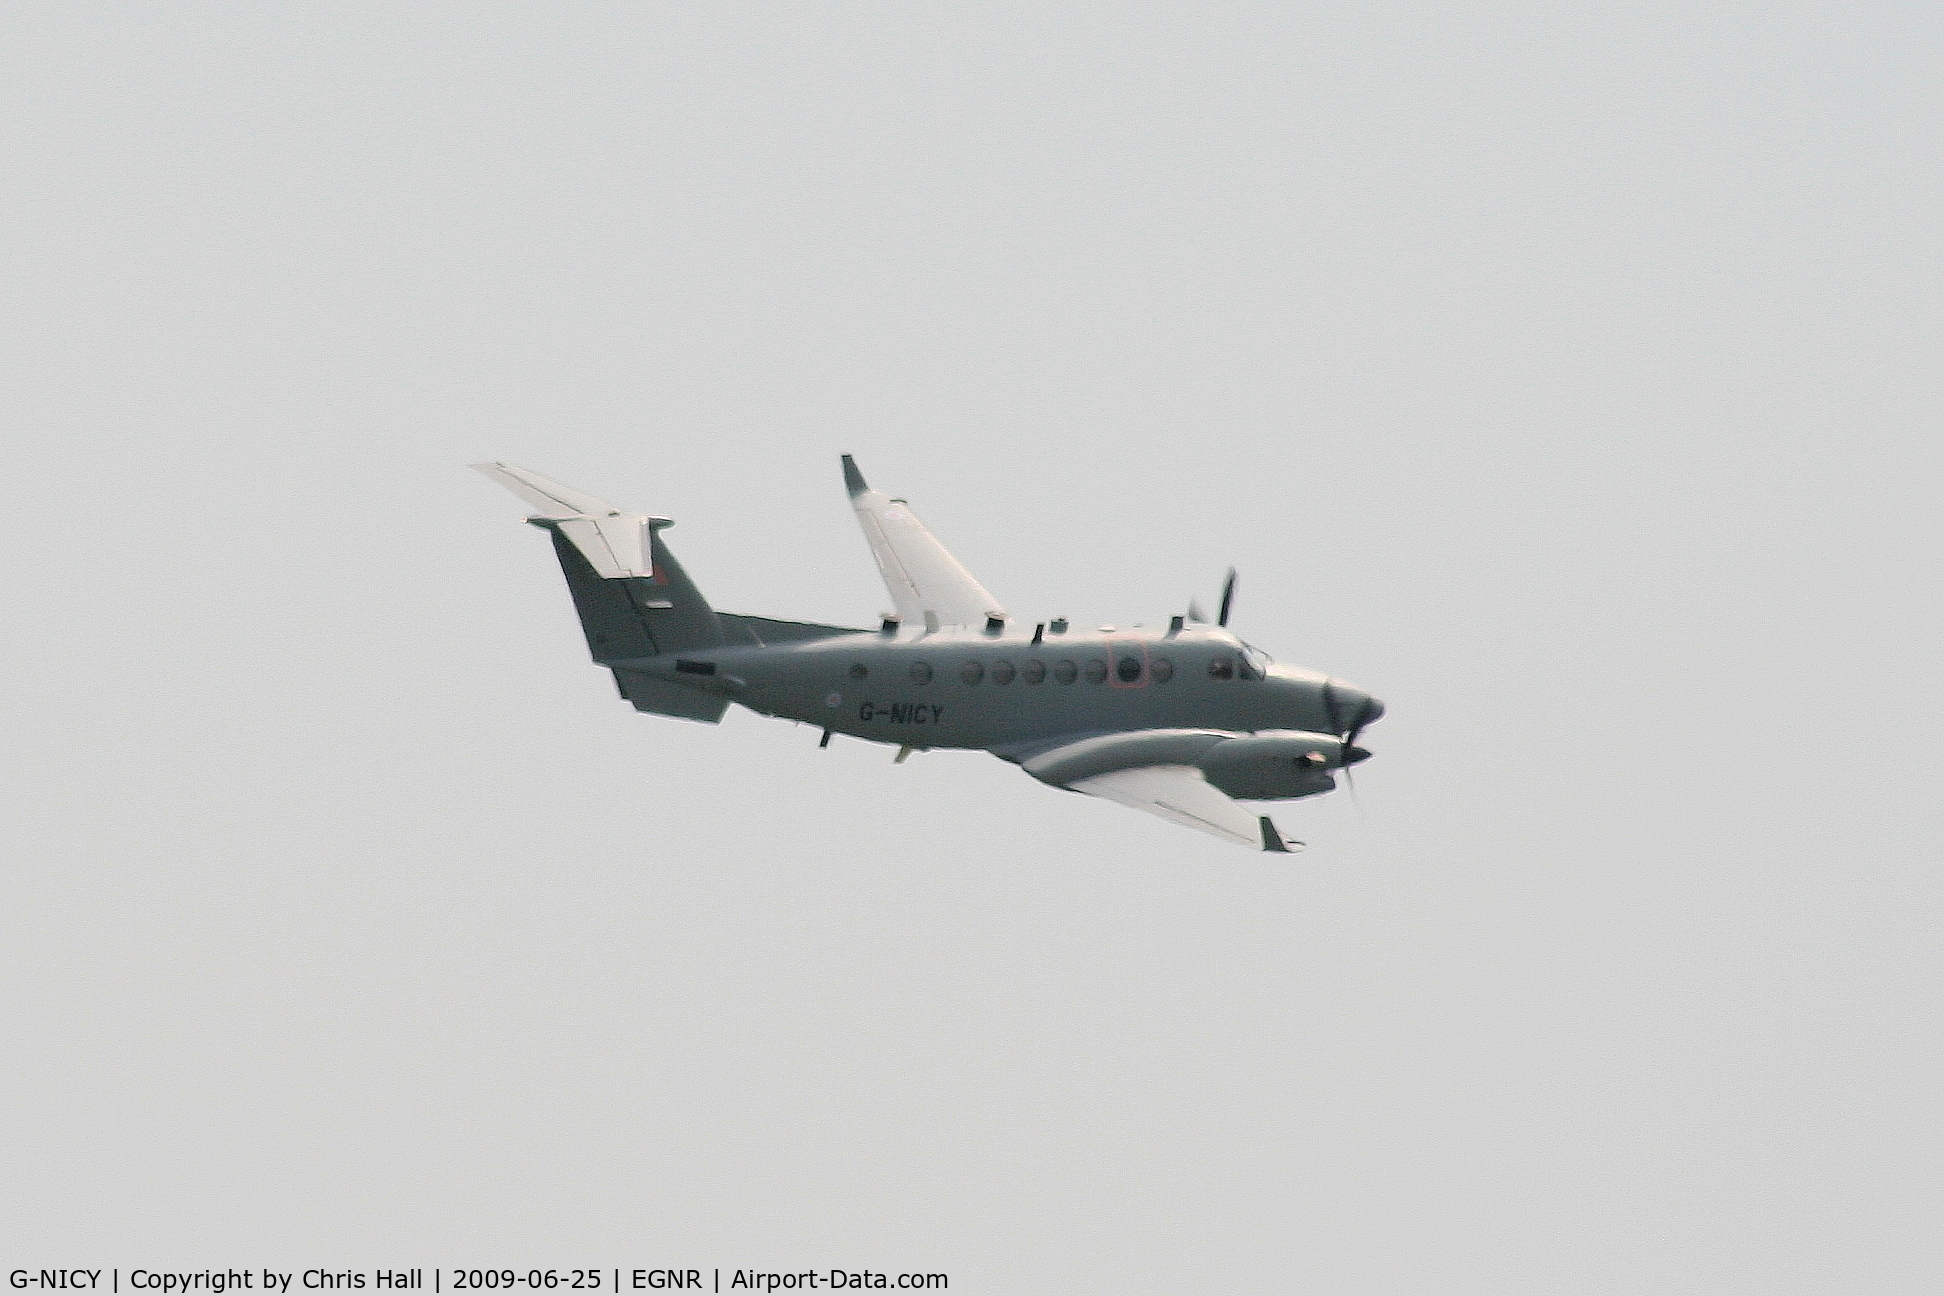 G-NICY, 2007 Hawker Beechcraft Shadow R1 (350CER) C/N FM-16, Super King Air bound for the Army Air Corps. It will become ZZ417 following the completion of alterations being carried out by Beechcraft at Hawarden